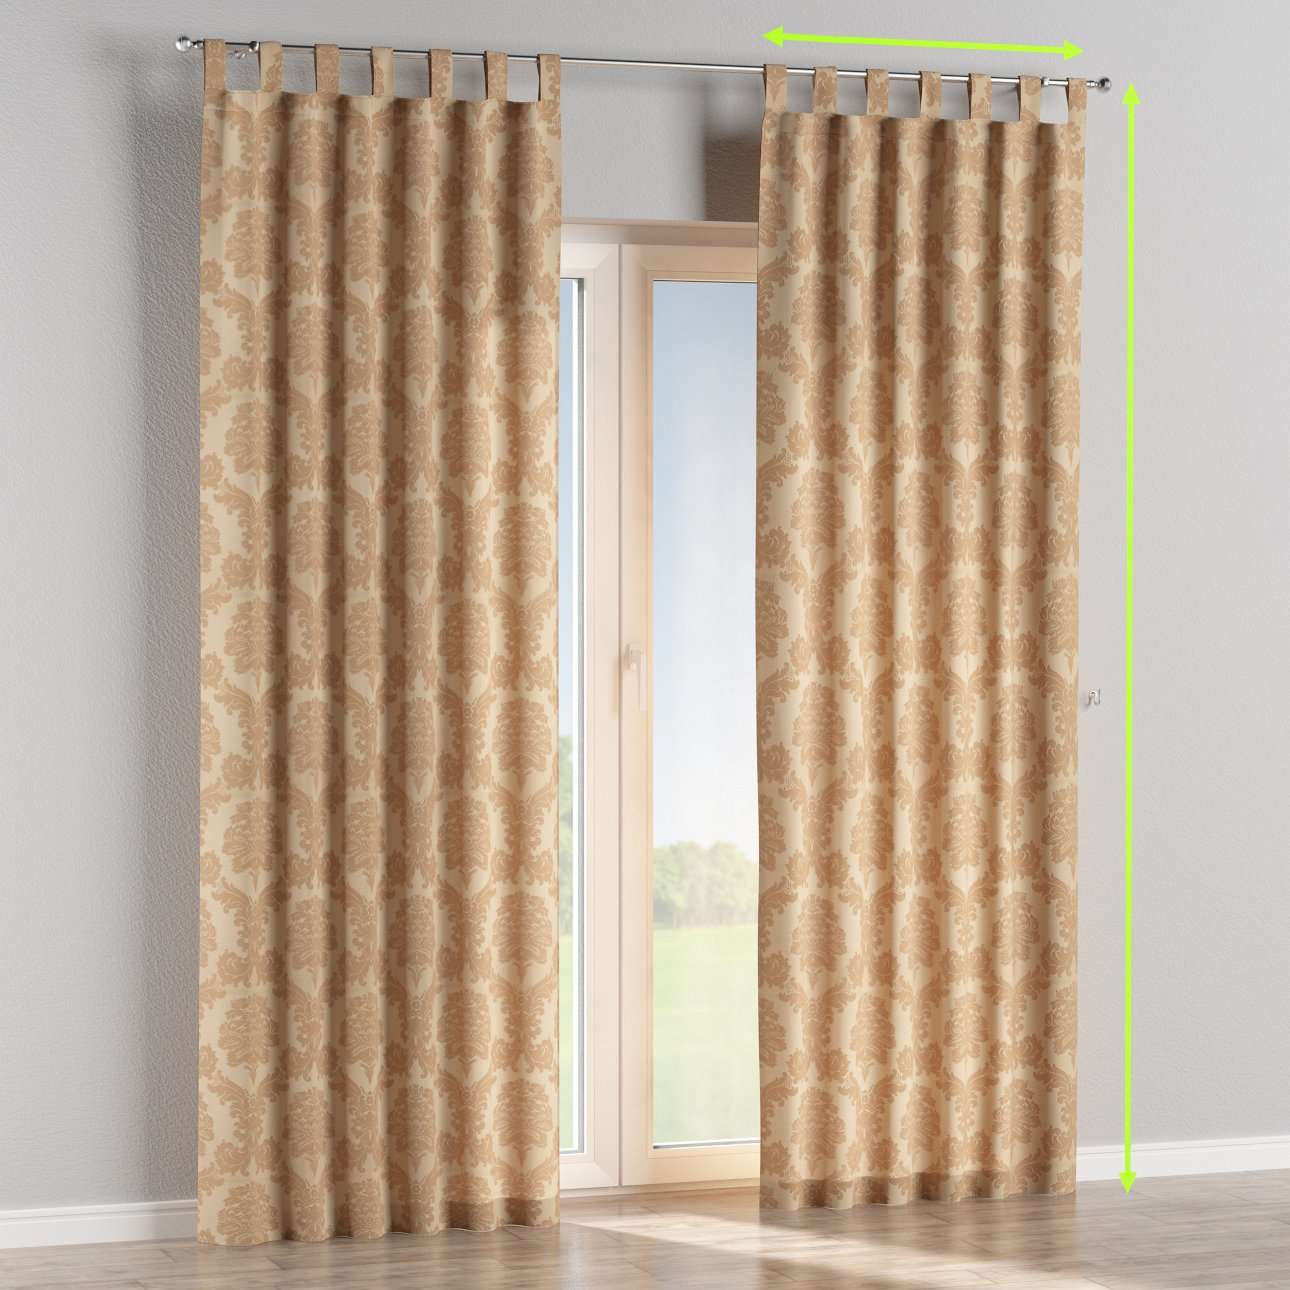 Tab top curtains in collection Damasco, fabric: 613-04